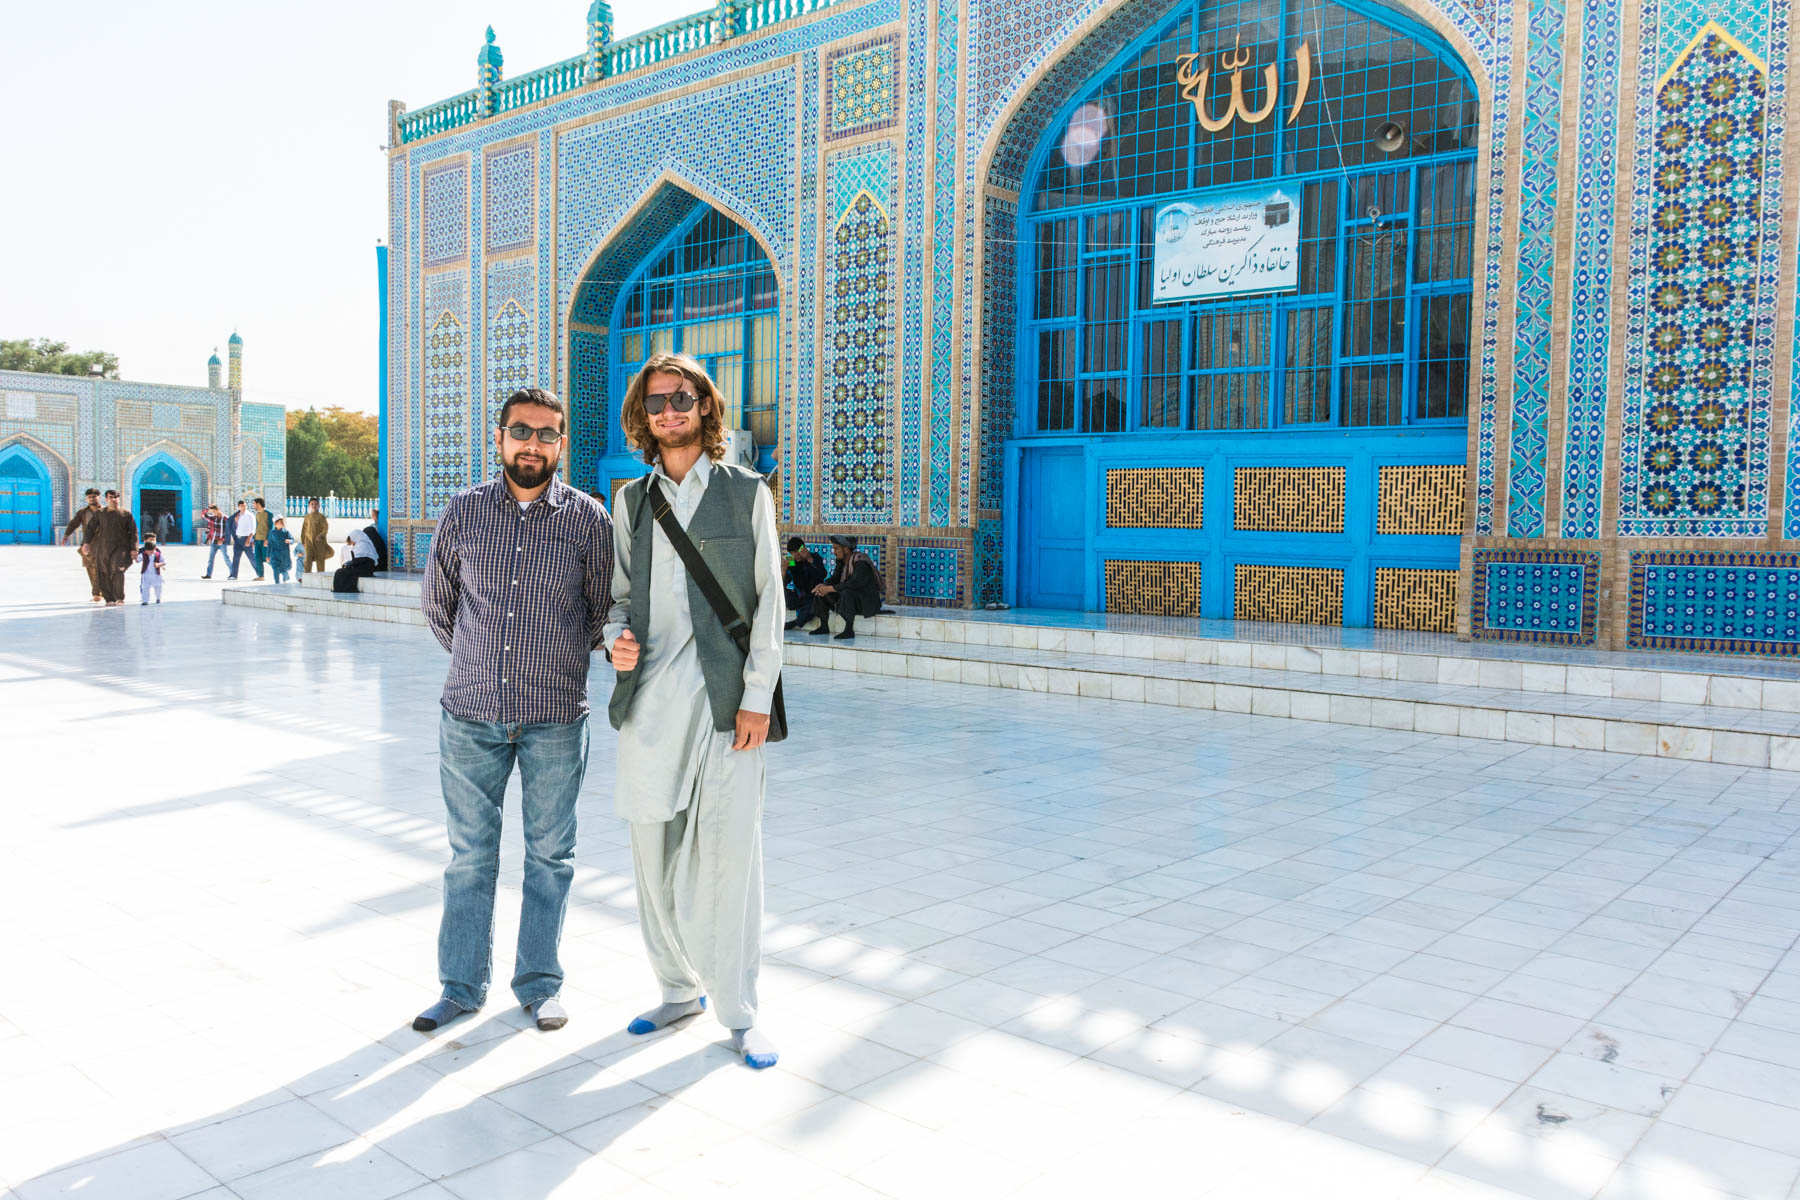 A Couchsurfing host in Mazar-i-sharif, Afghanistan - Lost With Purpose